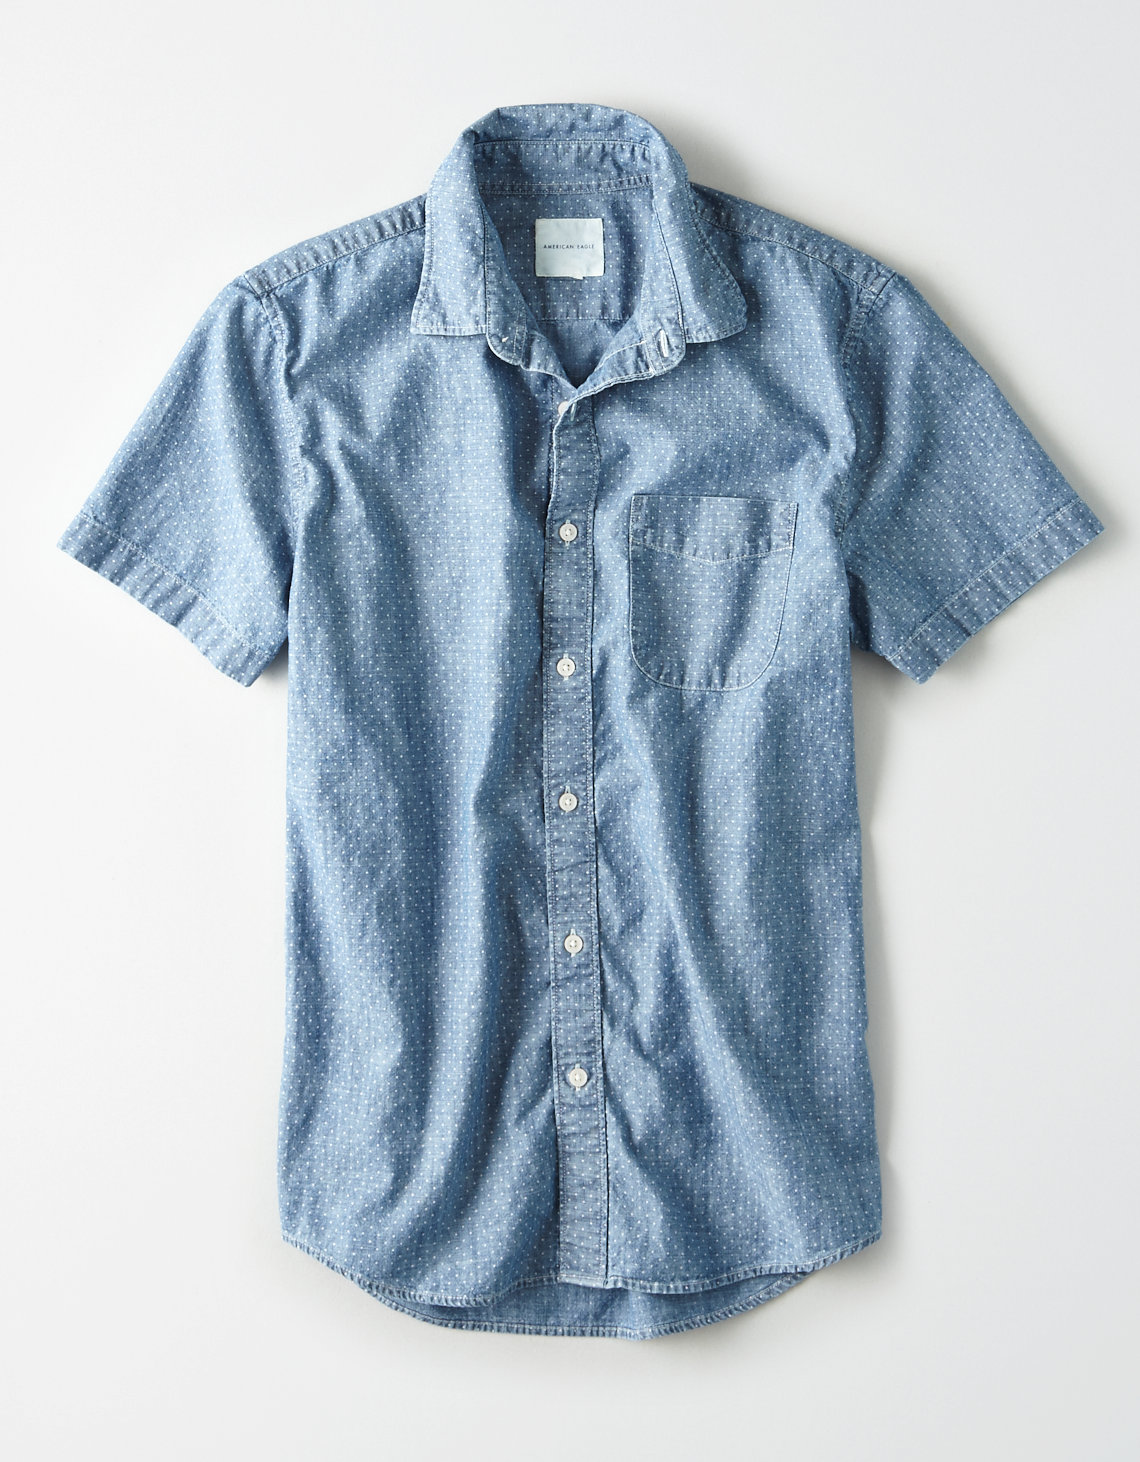 AE Short Sleeve Lightweight Denim Button Up Shirt